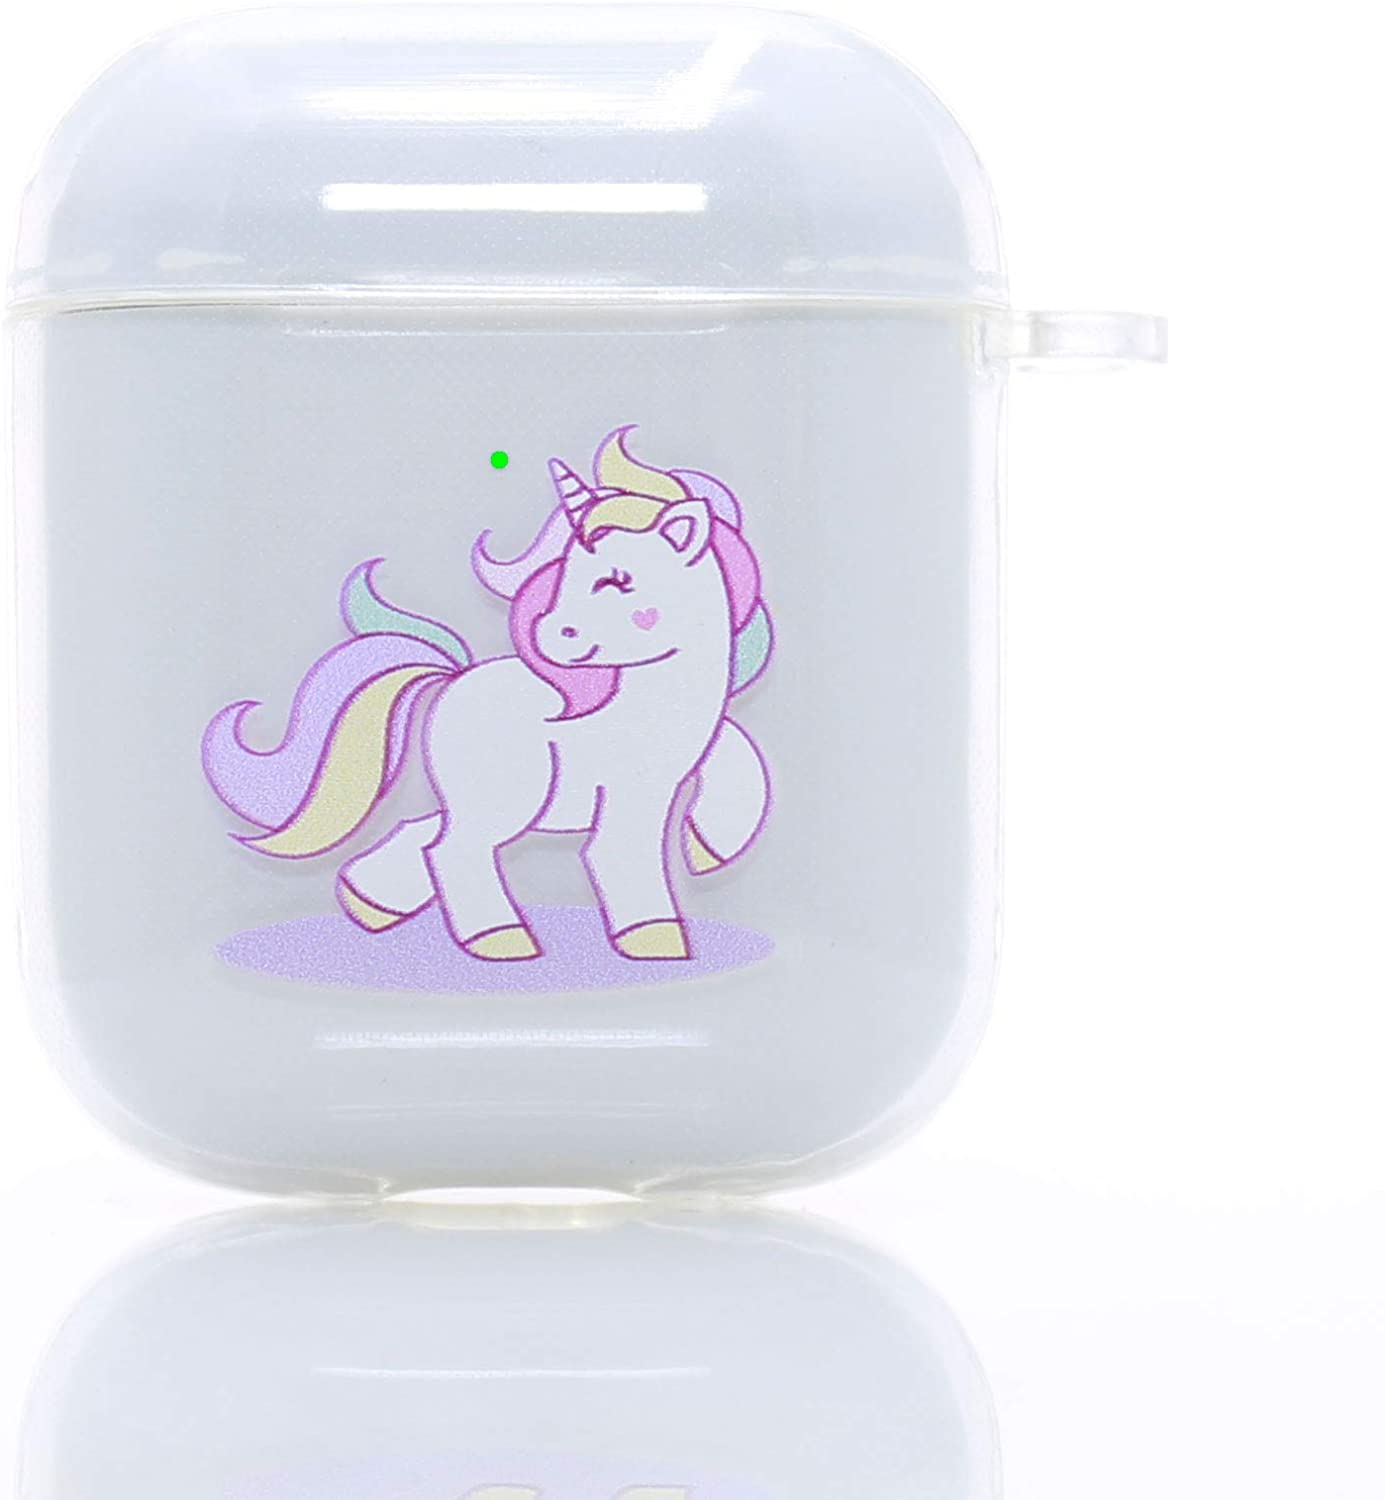 Clear AirPods Case,TPU AirPod 1&2 Case Cover for Apple AirPods Charging Case, Cute Pink Unicorn AirPods Soft Protective Case for Girls Teenages